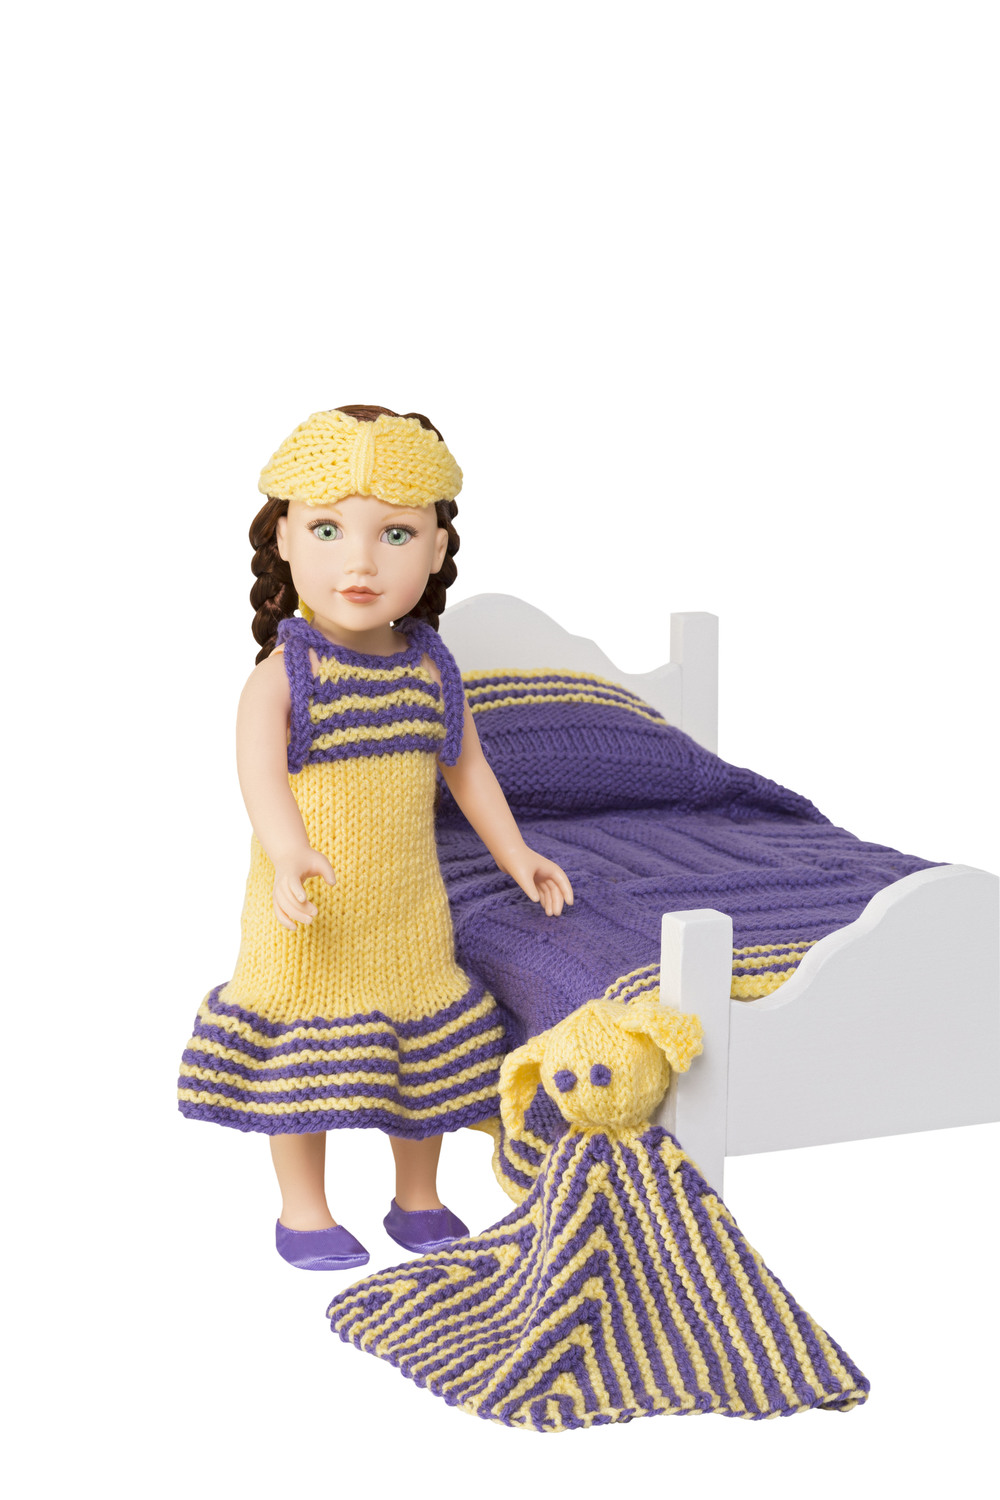 ITM_Doll_Knit_SleepBty_8174.jpg